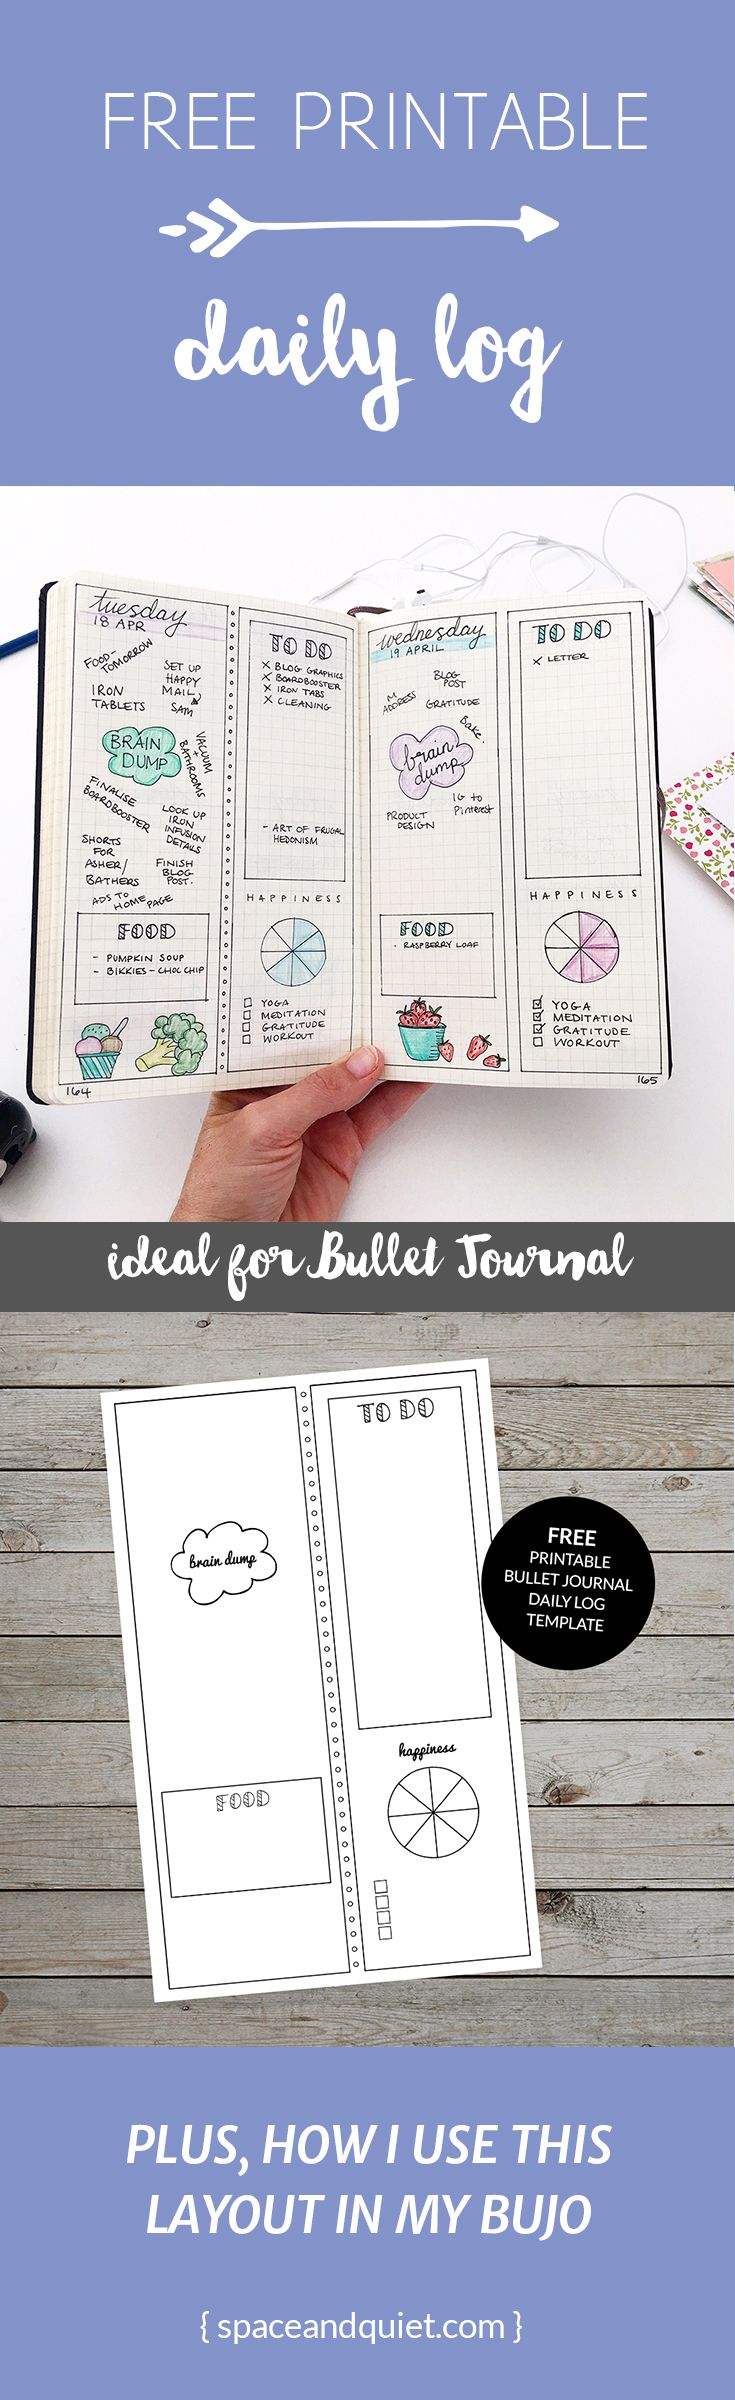 Click through to download my free printable bullet journal daily log template. Use as inspiration for your daily log design, or trace straight onto your bullet journal page. #bulletjournaldailylog #bulletjournal #bulletjournalprintable #plannerprintable #spaceandquiet #bulletjournaling